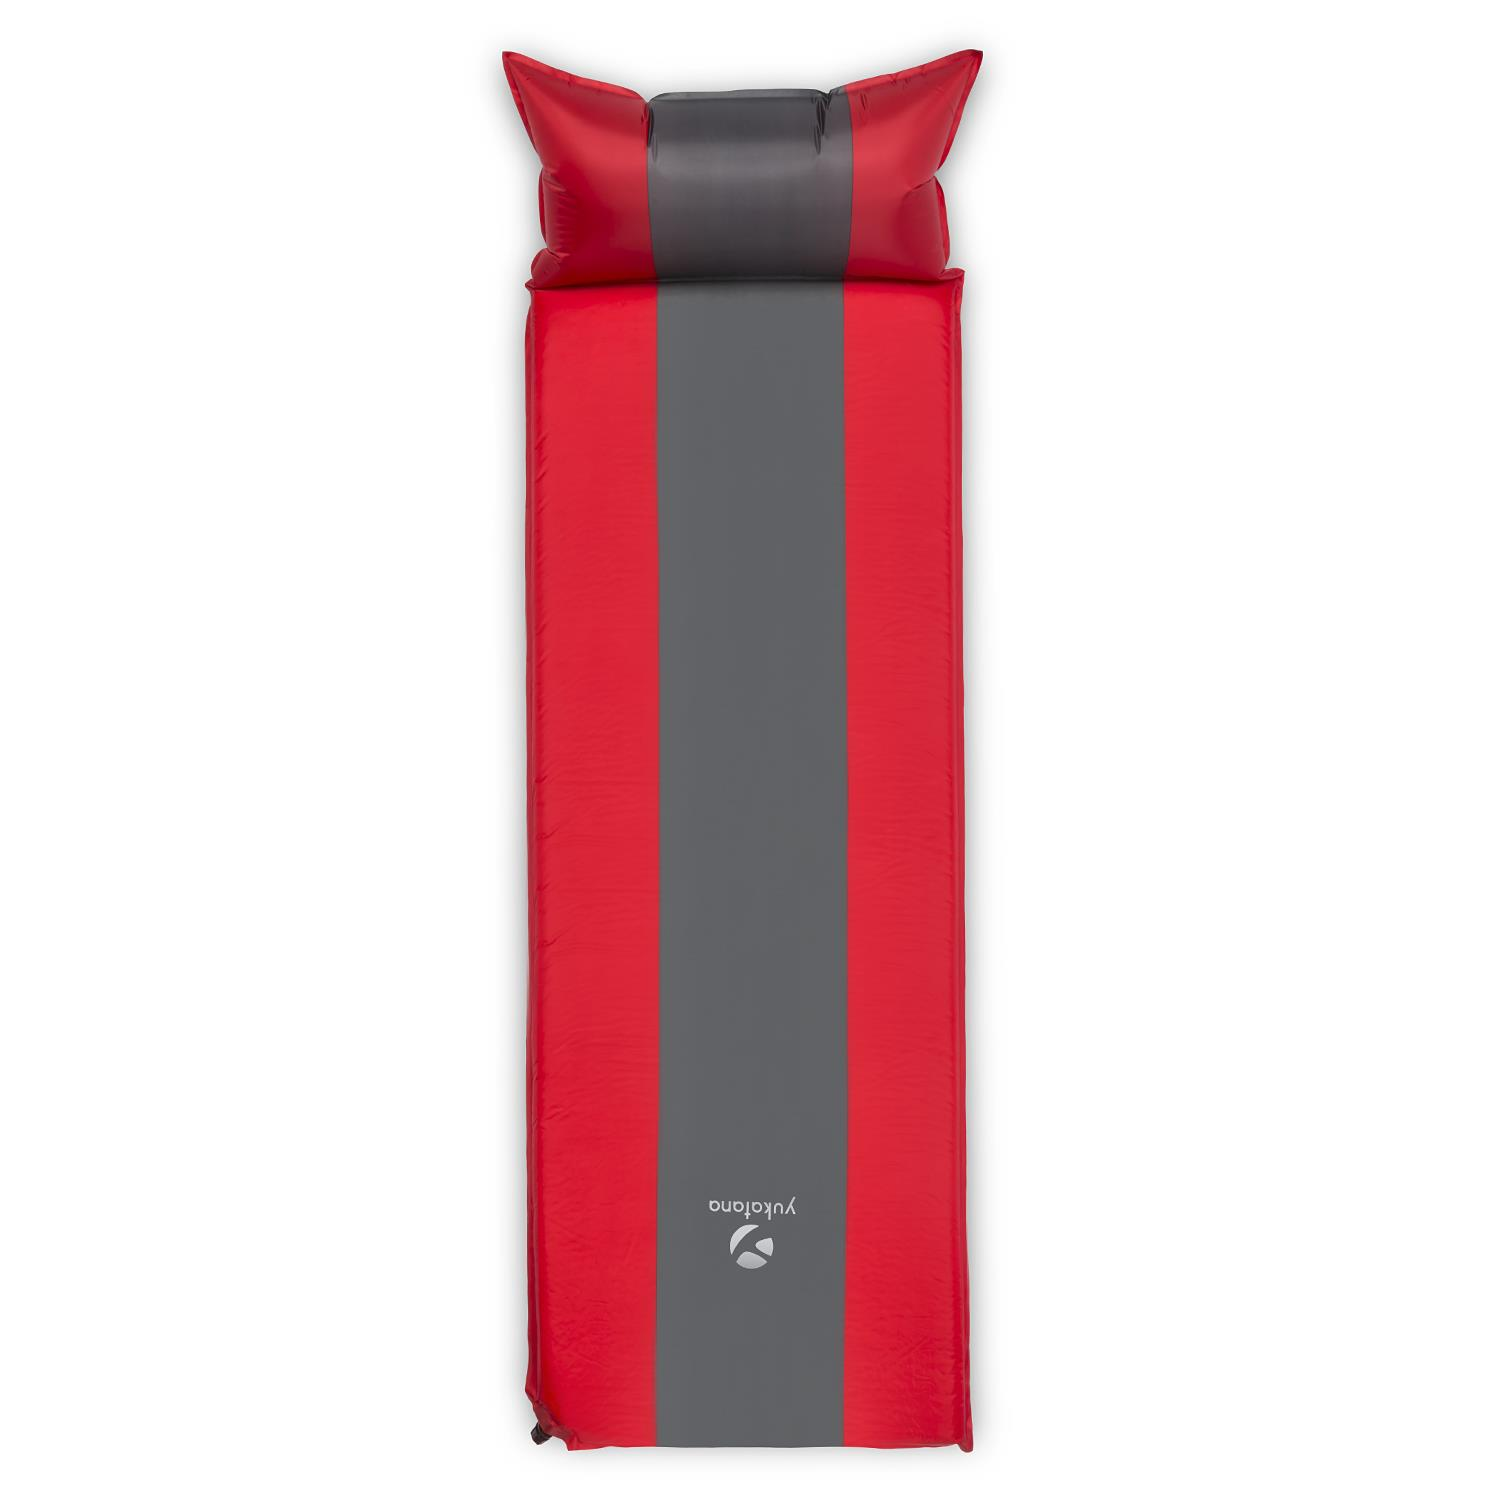 10 CM SINGLE SELF INFLATE CAMPING INFLATABLE SLEEPING MATTRESS RED GREY NEW